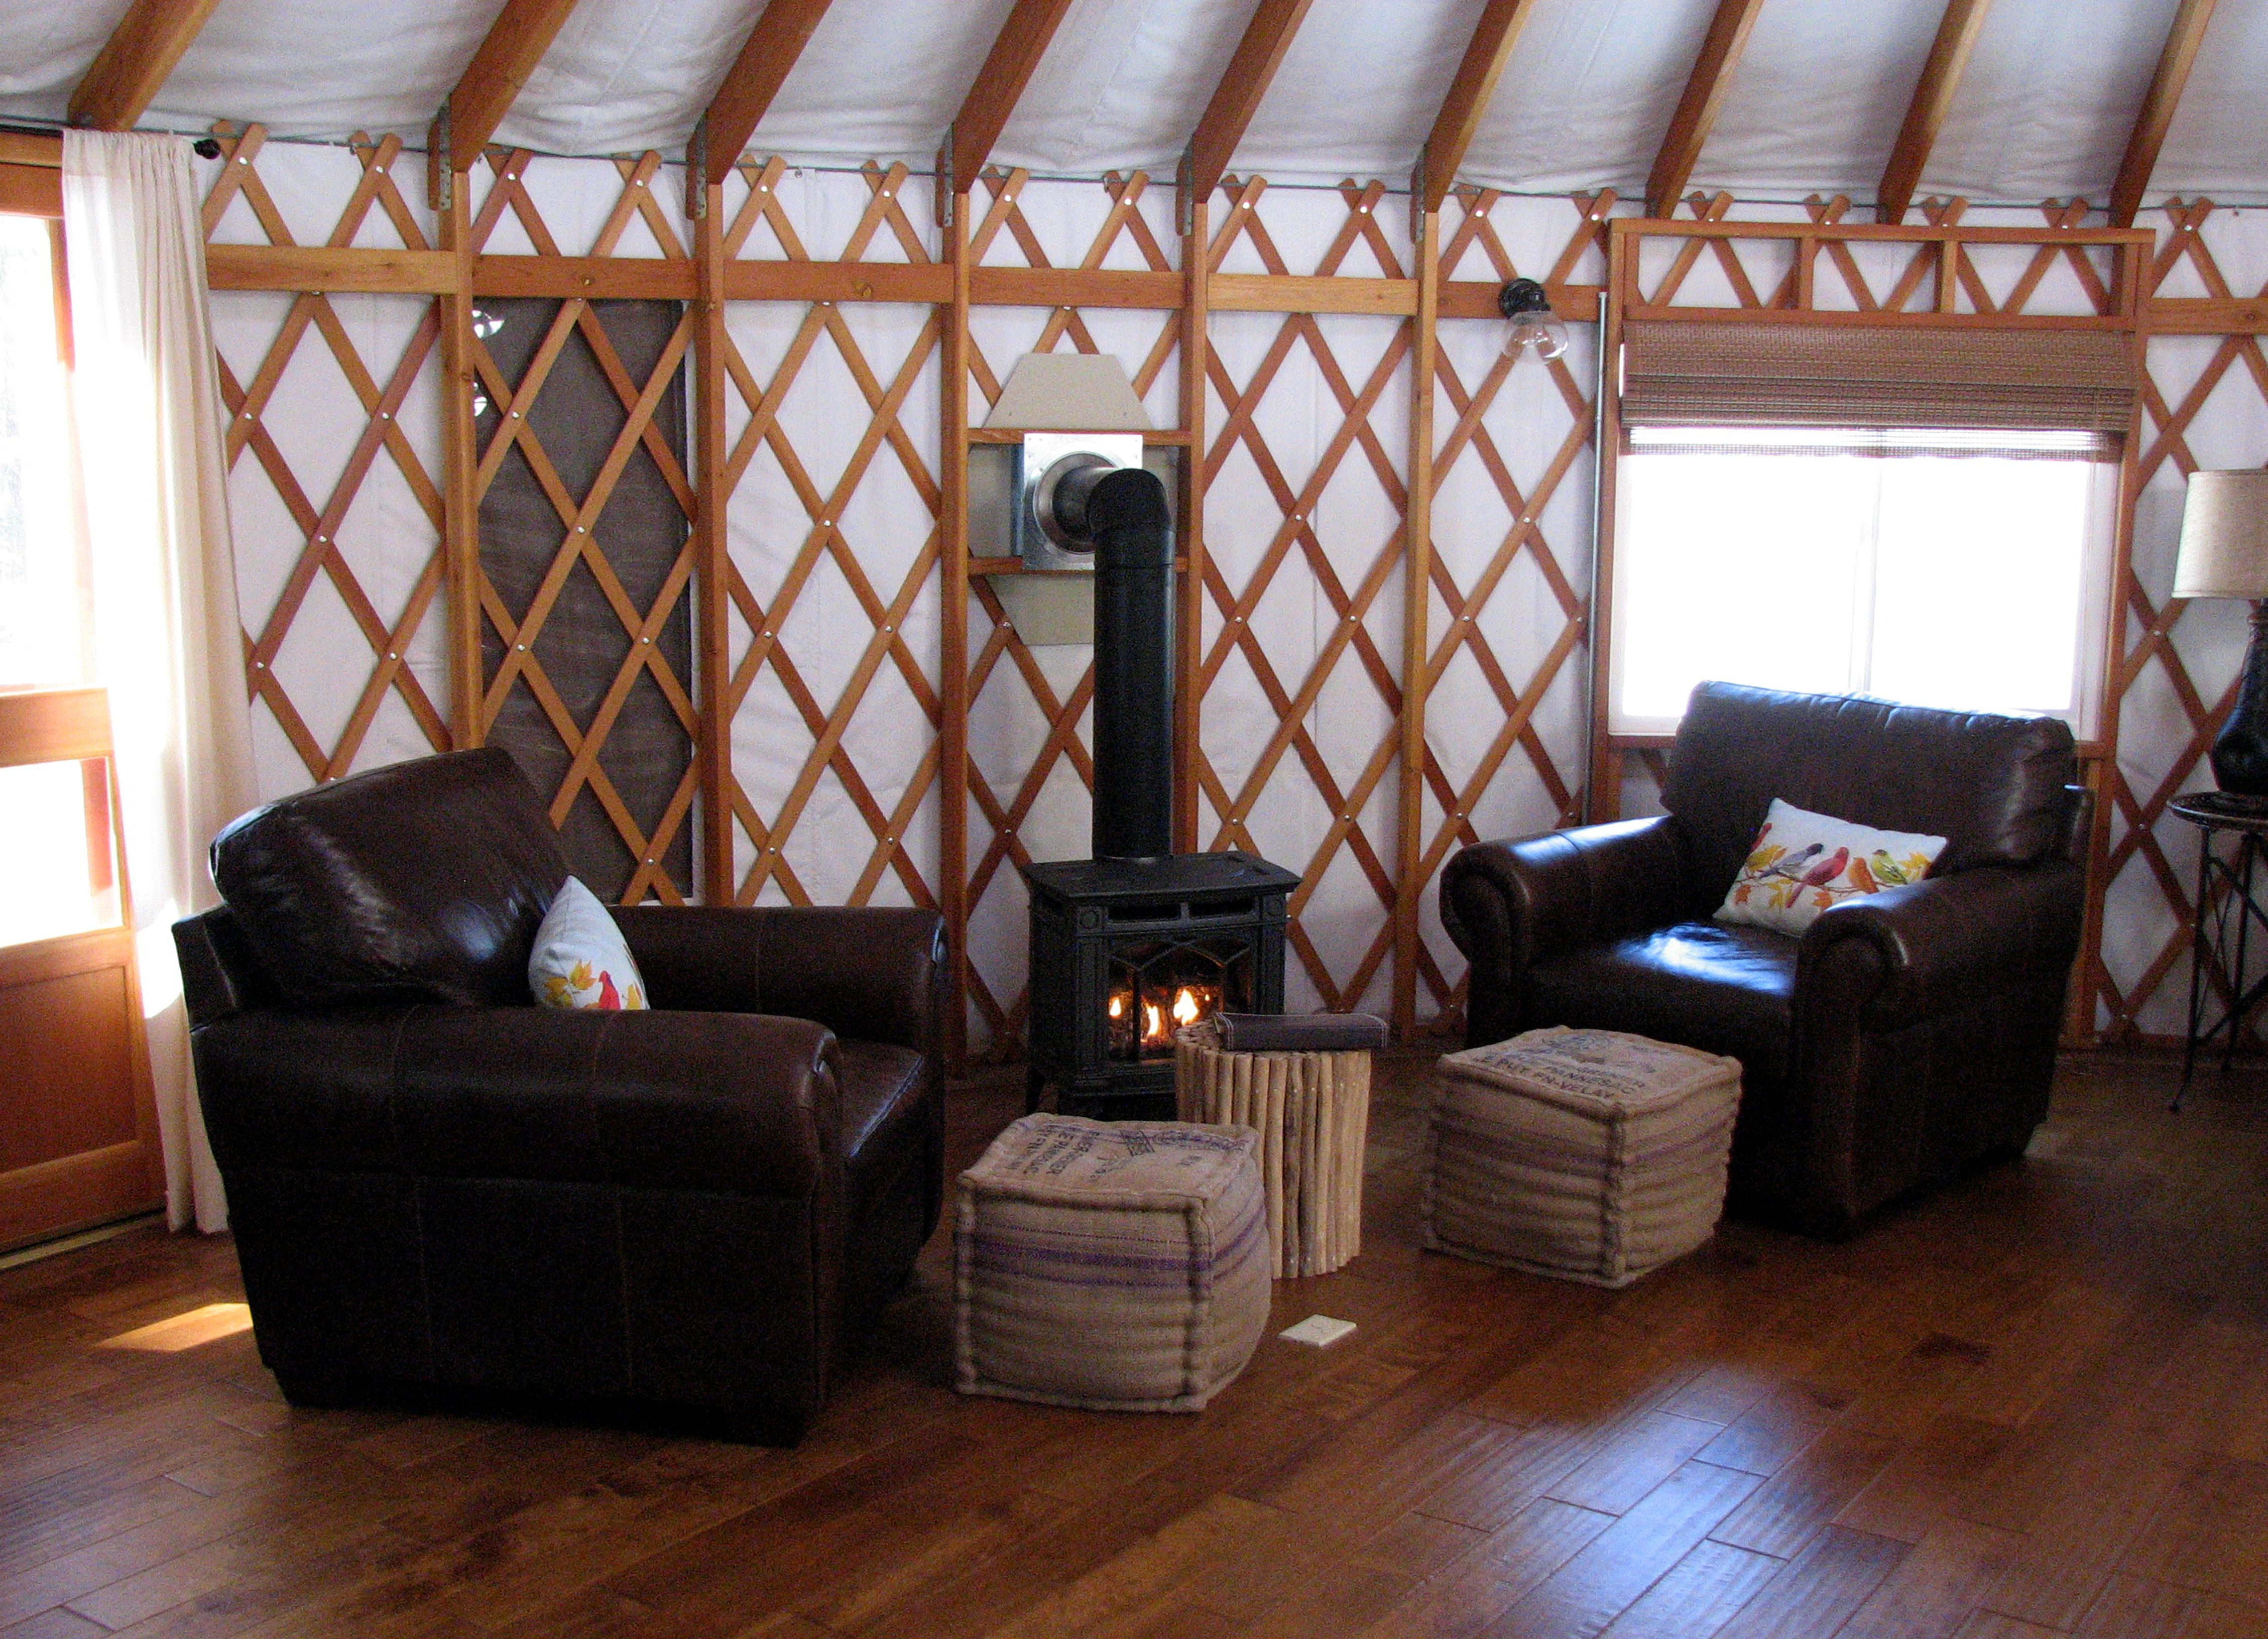 Radiant Floor Heat And Gas Fireplaces Make The Yurts A